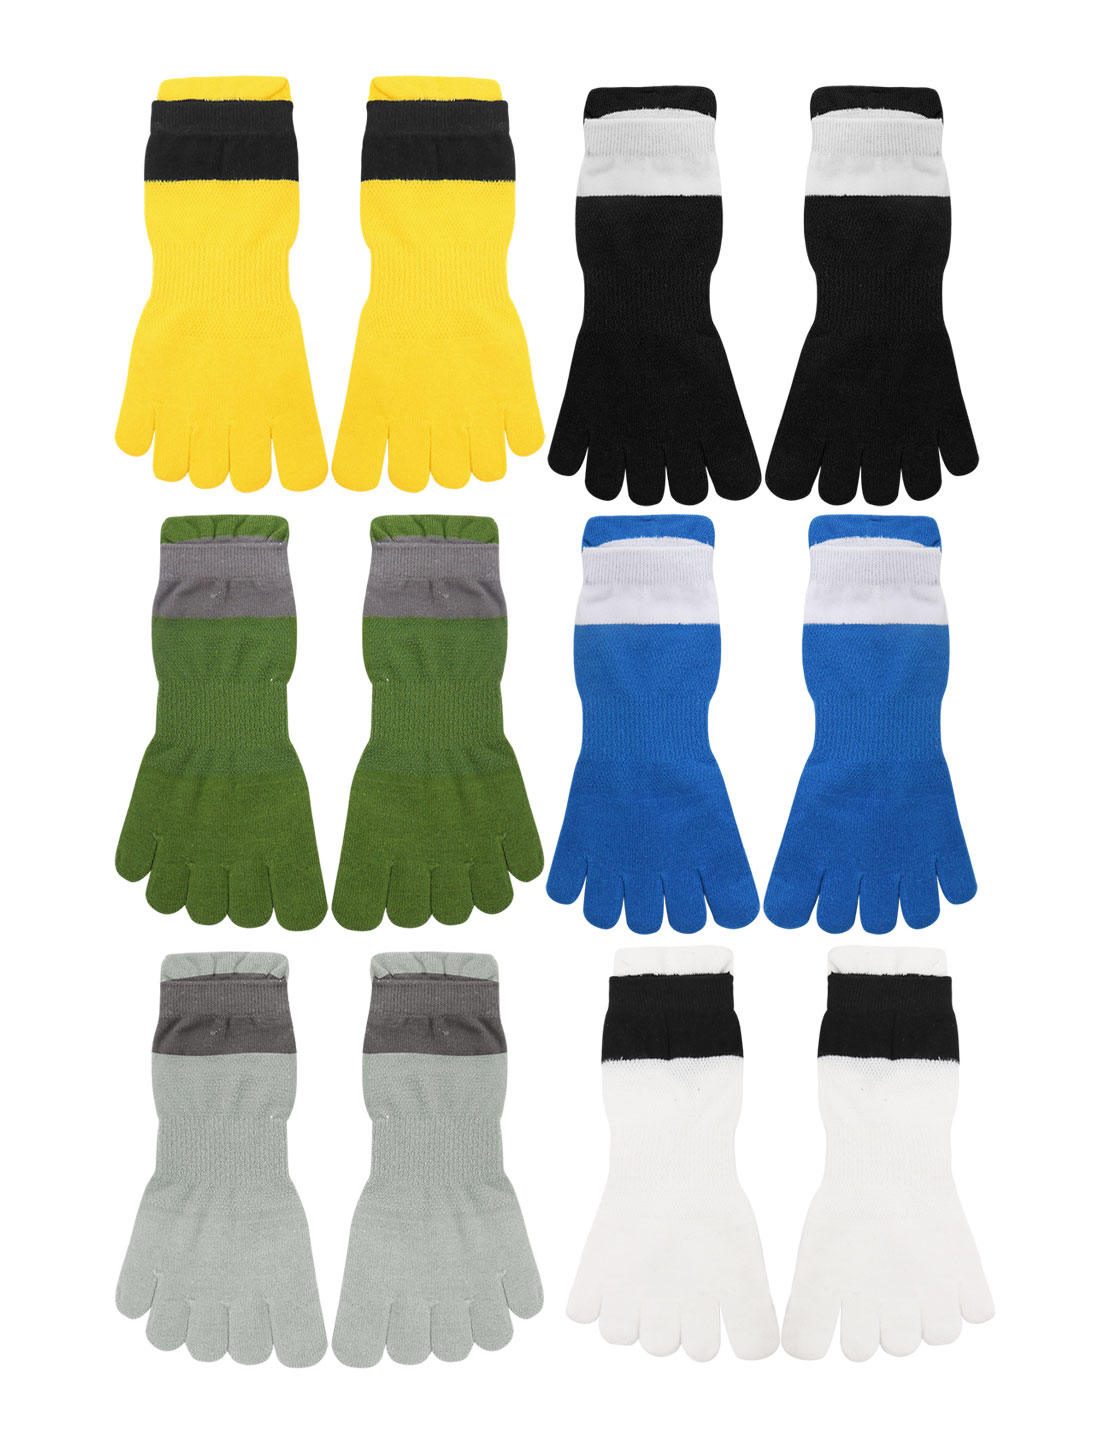 Men Elastic Cuffs Stretchy Ankle Length Toe Socks 6 Pairs Assorted Color